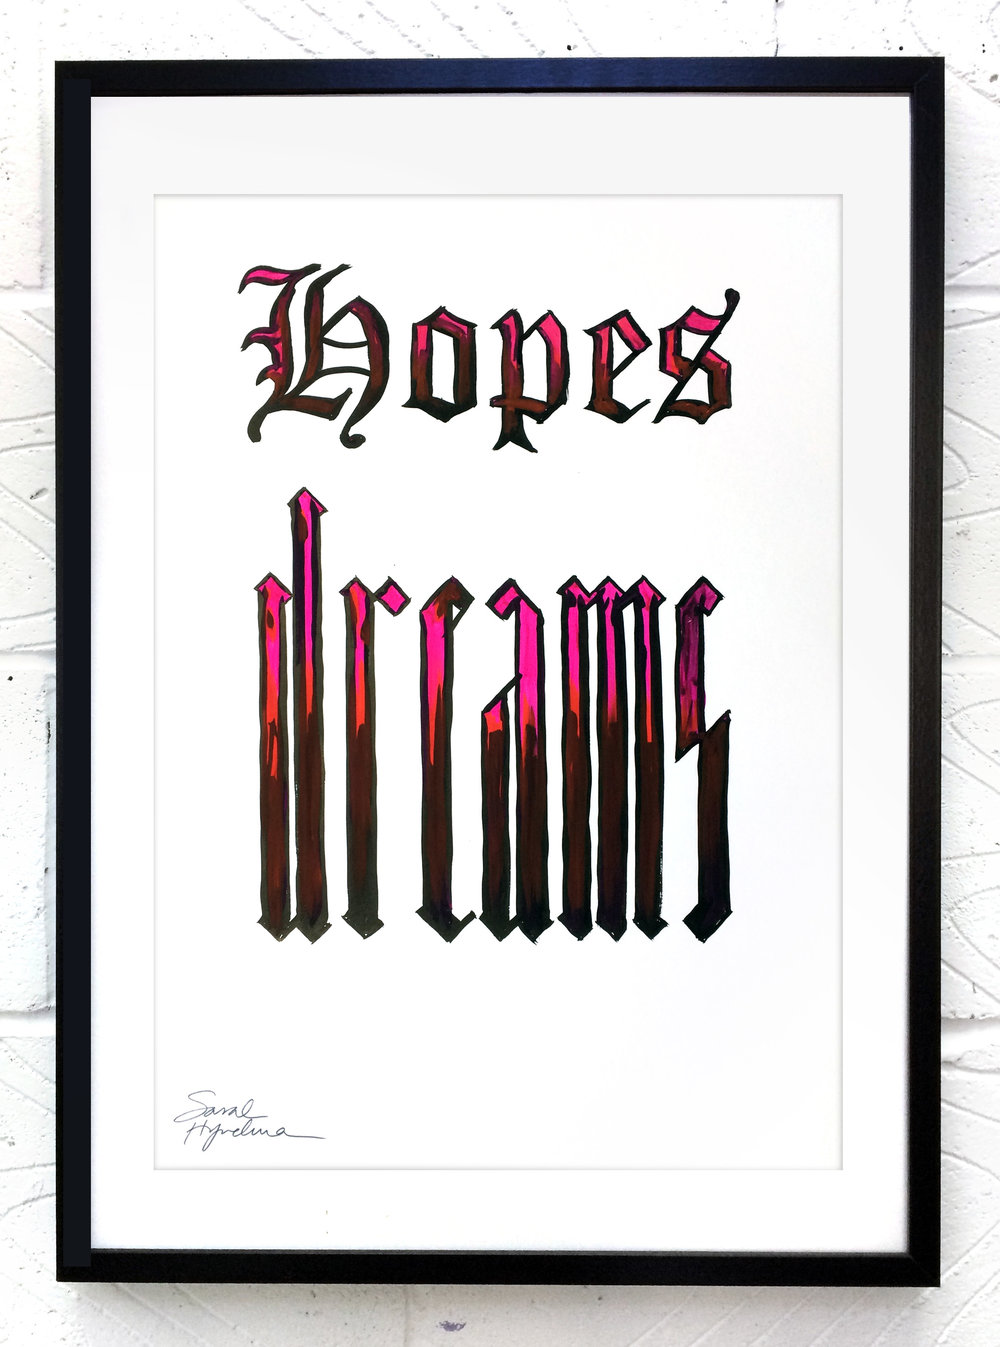 Hopes Dreams - painting by Sarah Hyndman